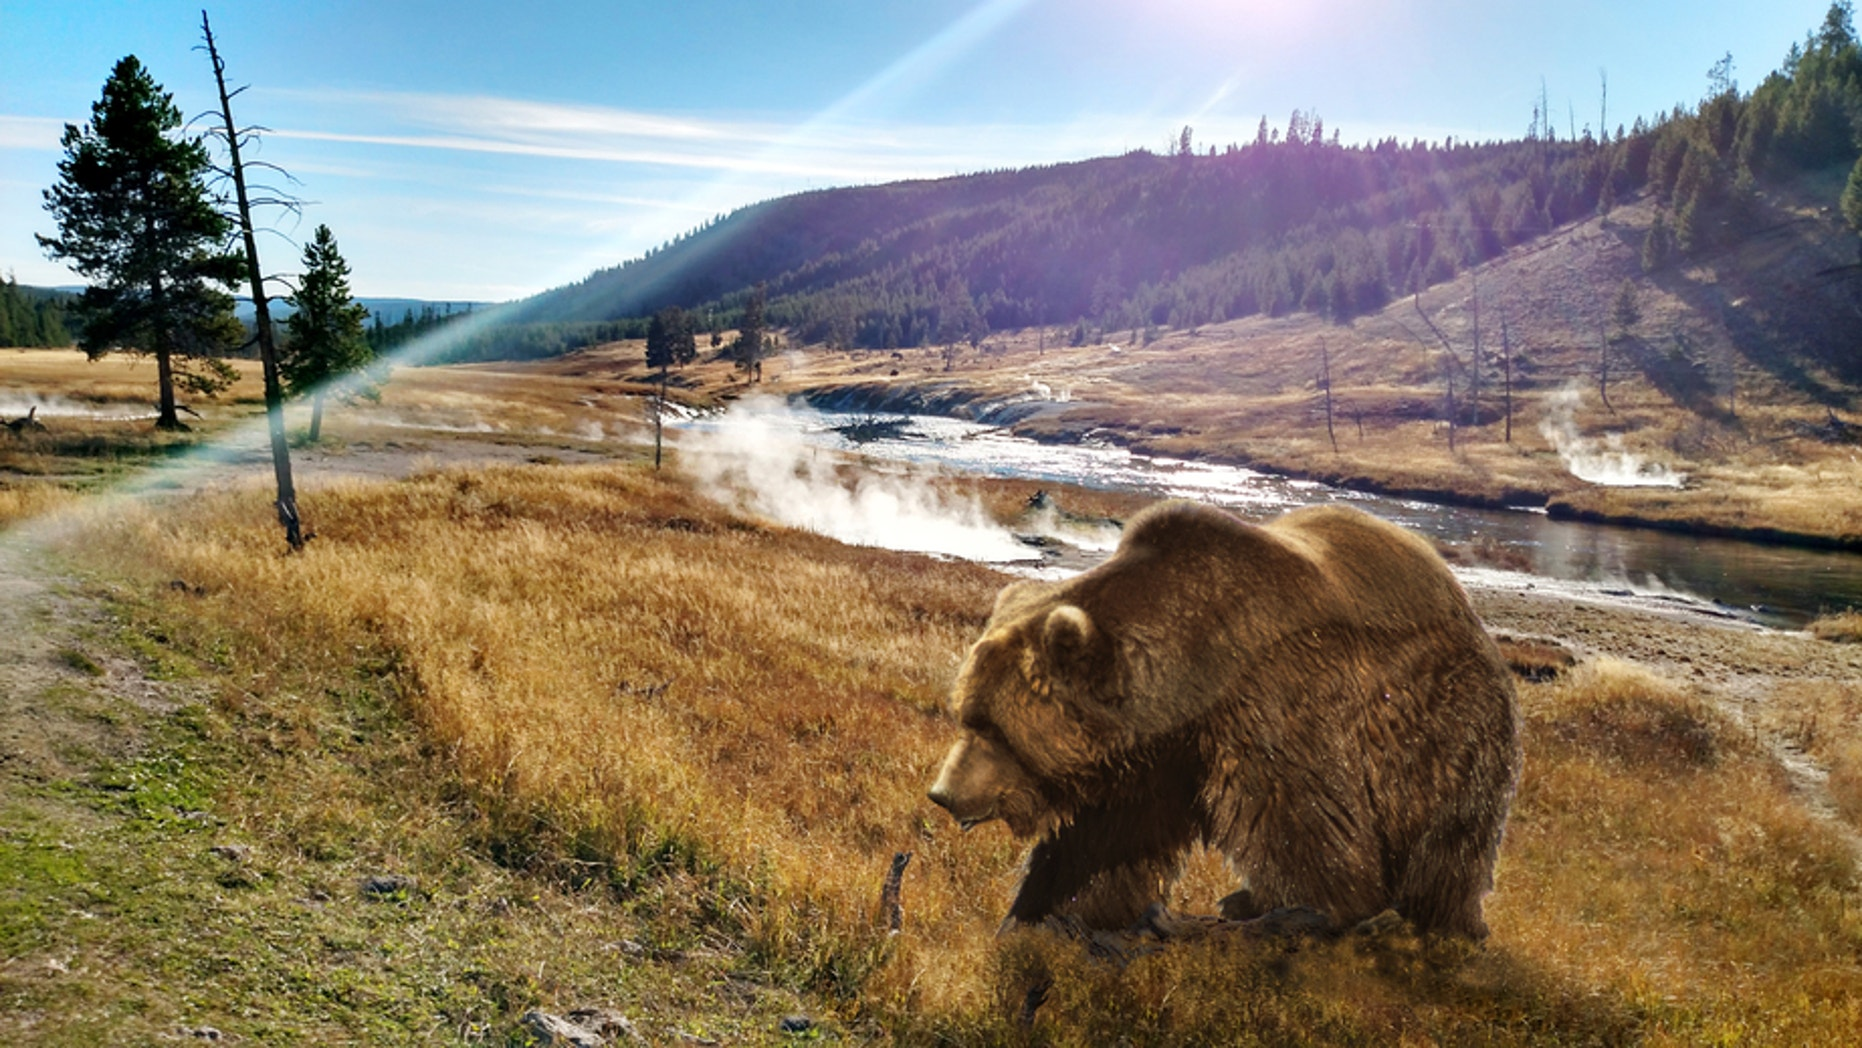 National parks are safe but accidents still happen.